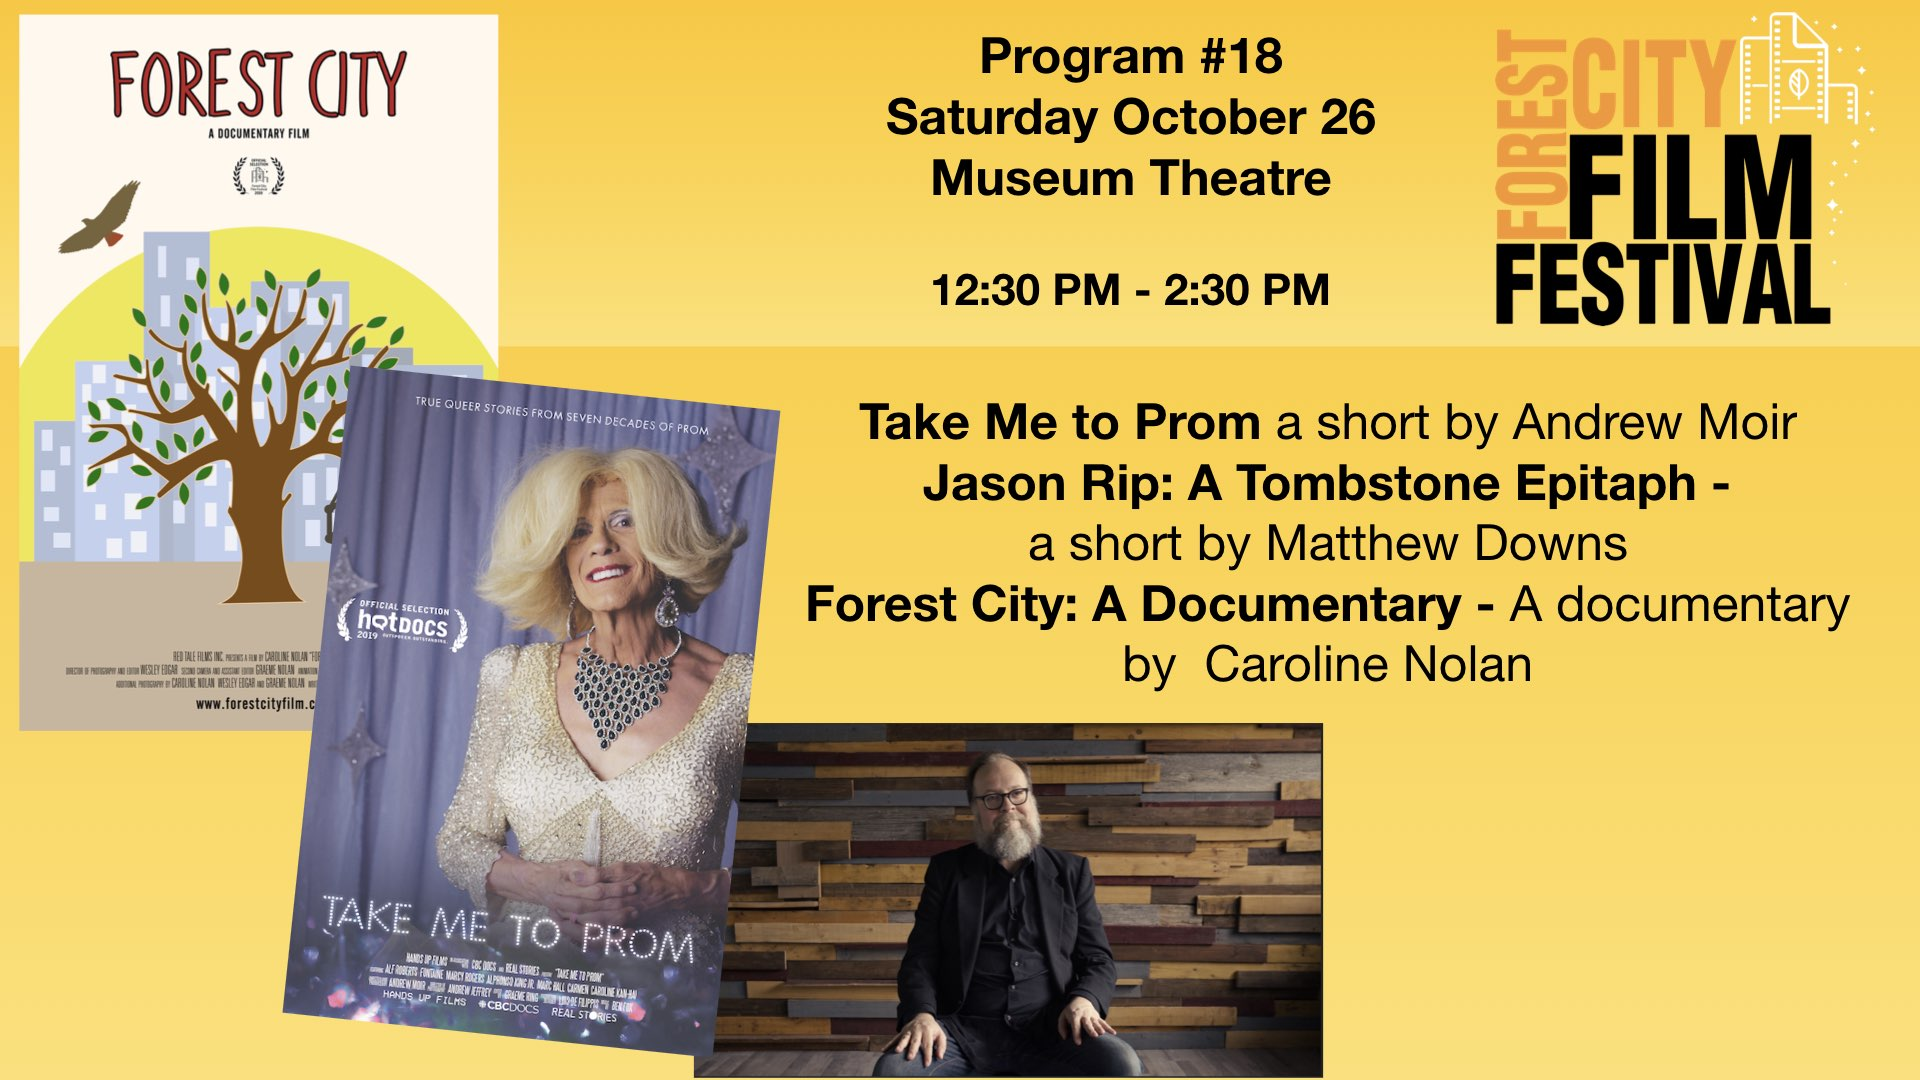 FCFF 2019 - Saturday Early Afternoon at  Museum Theatre #18 - Forest City - A Documentary &  Jason Rip: A tombstone Epitaph & Take me to Prom